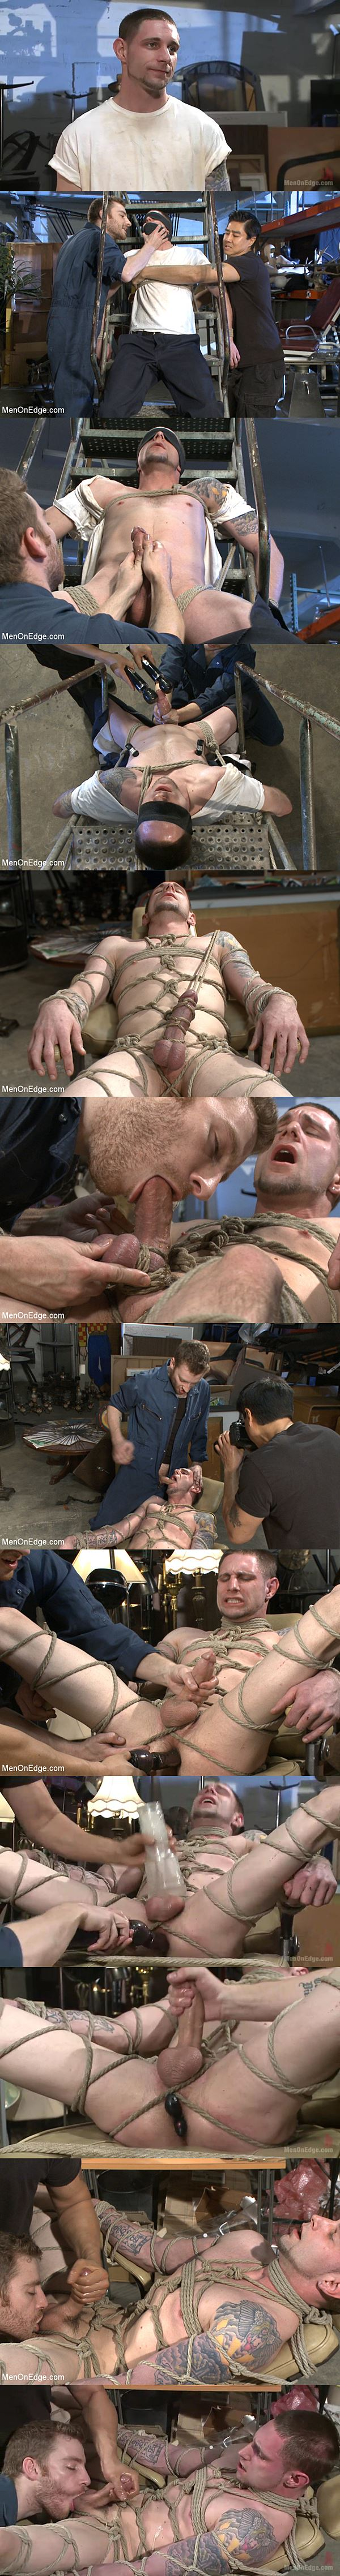 Big-dicked Jay Rising gets brutally Edged till cumming in Straight Stud with a Giant Cock Relentlessly Edged against His Will at Menonedge 02